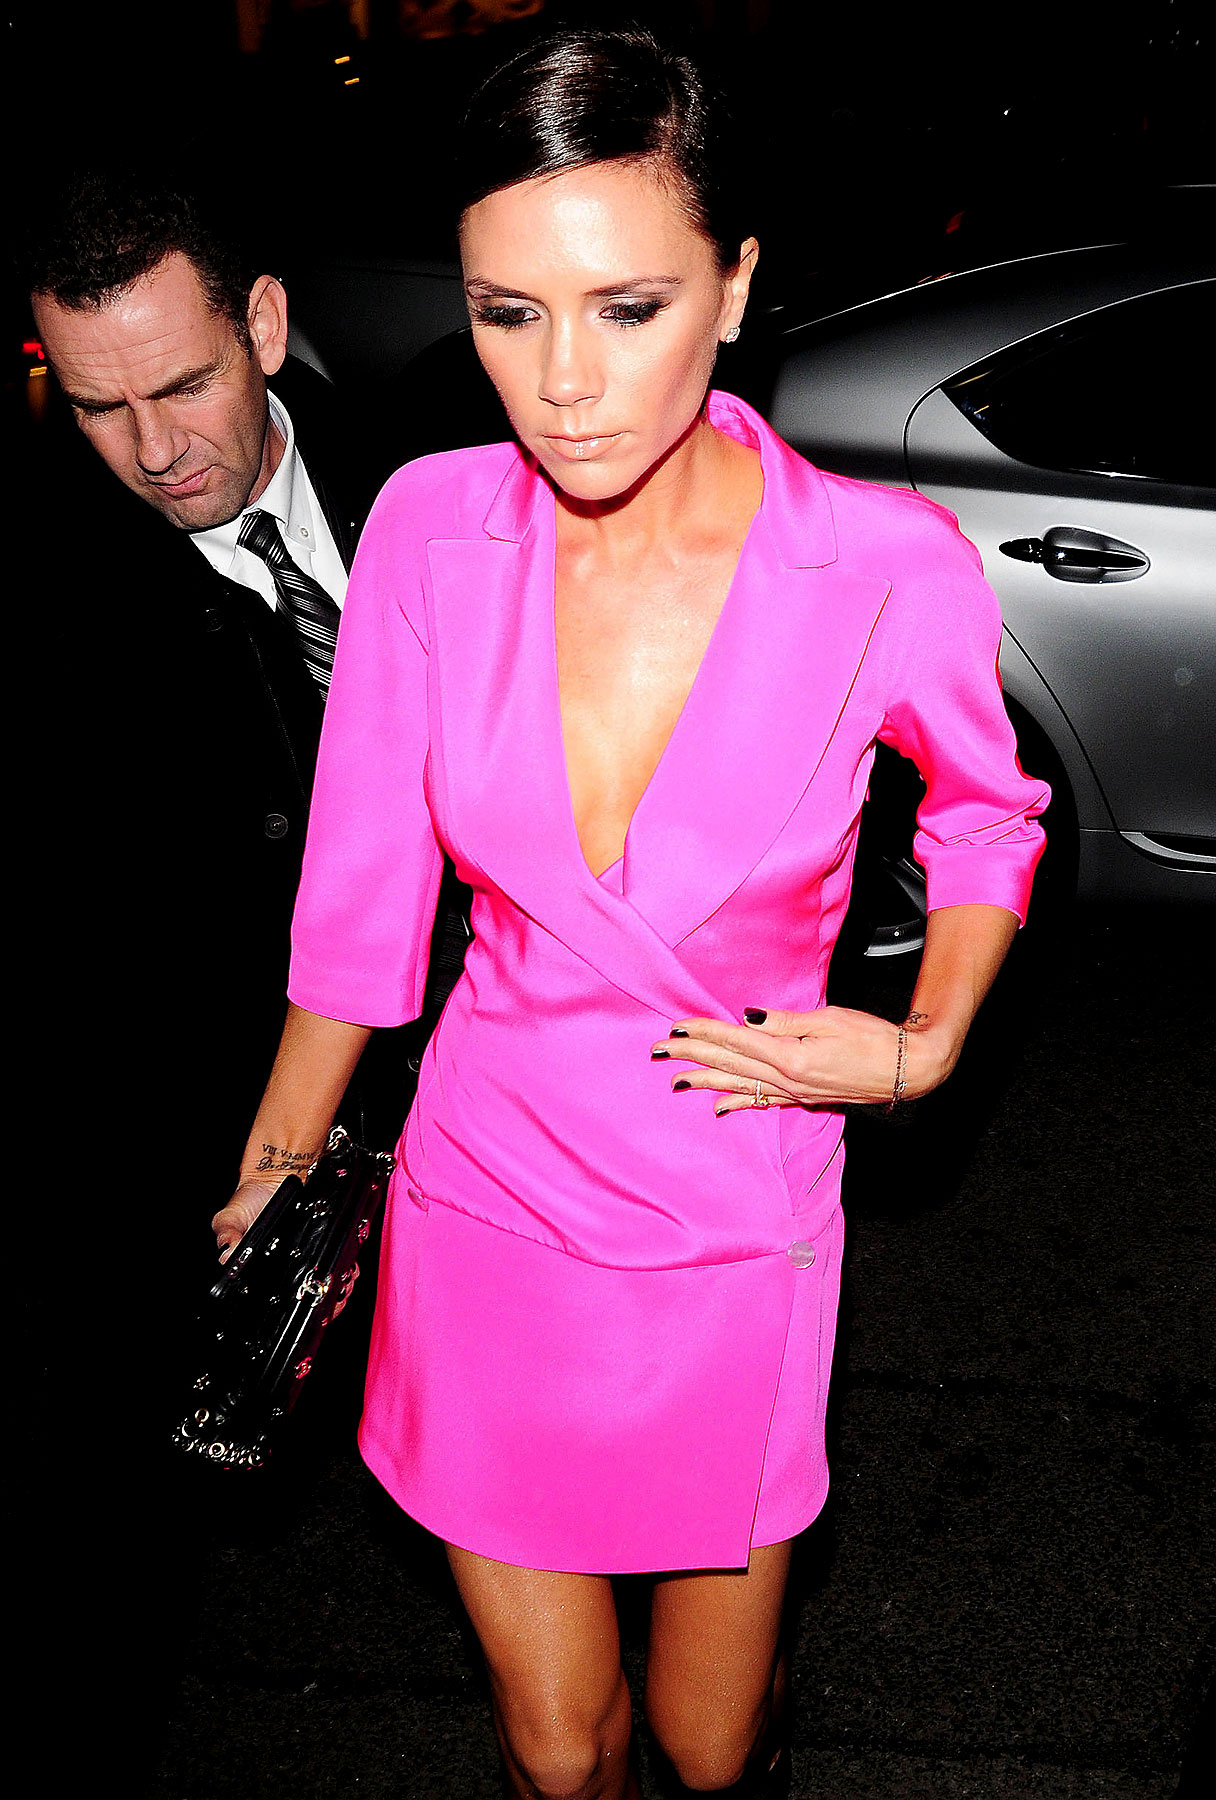 Posh is Pretty in Pink